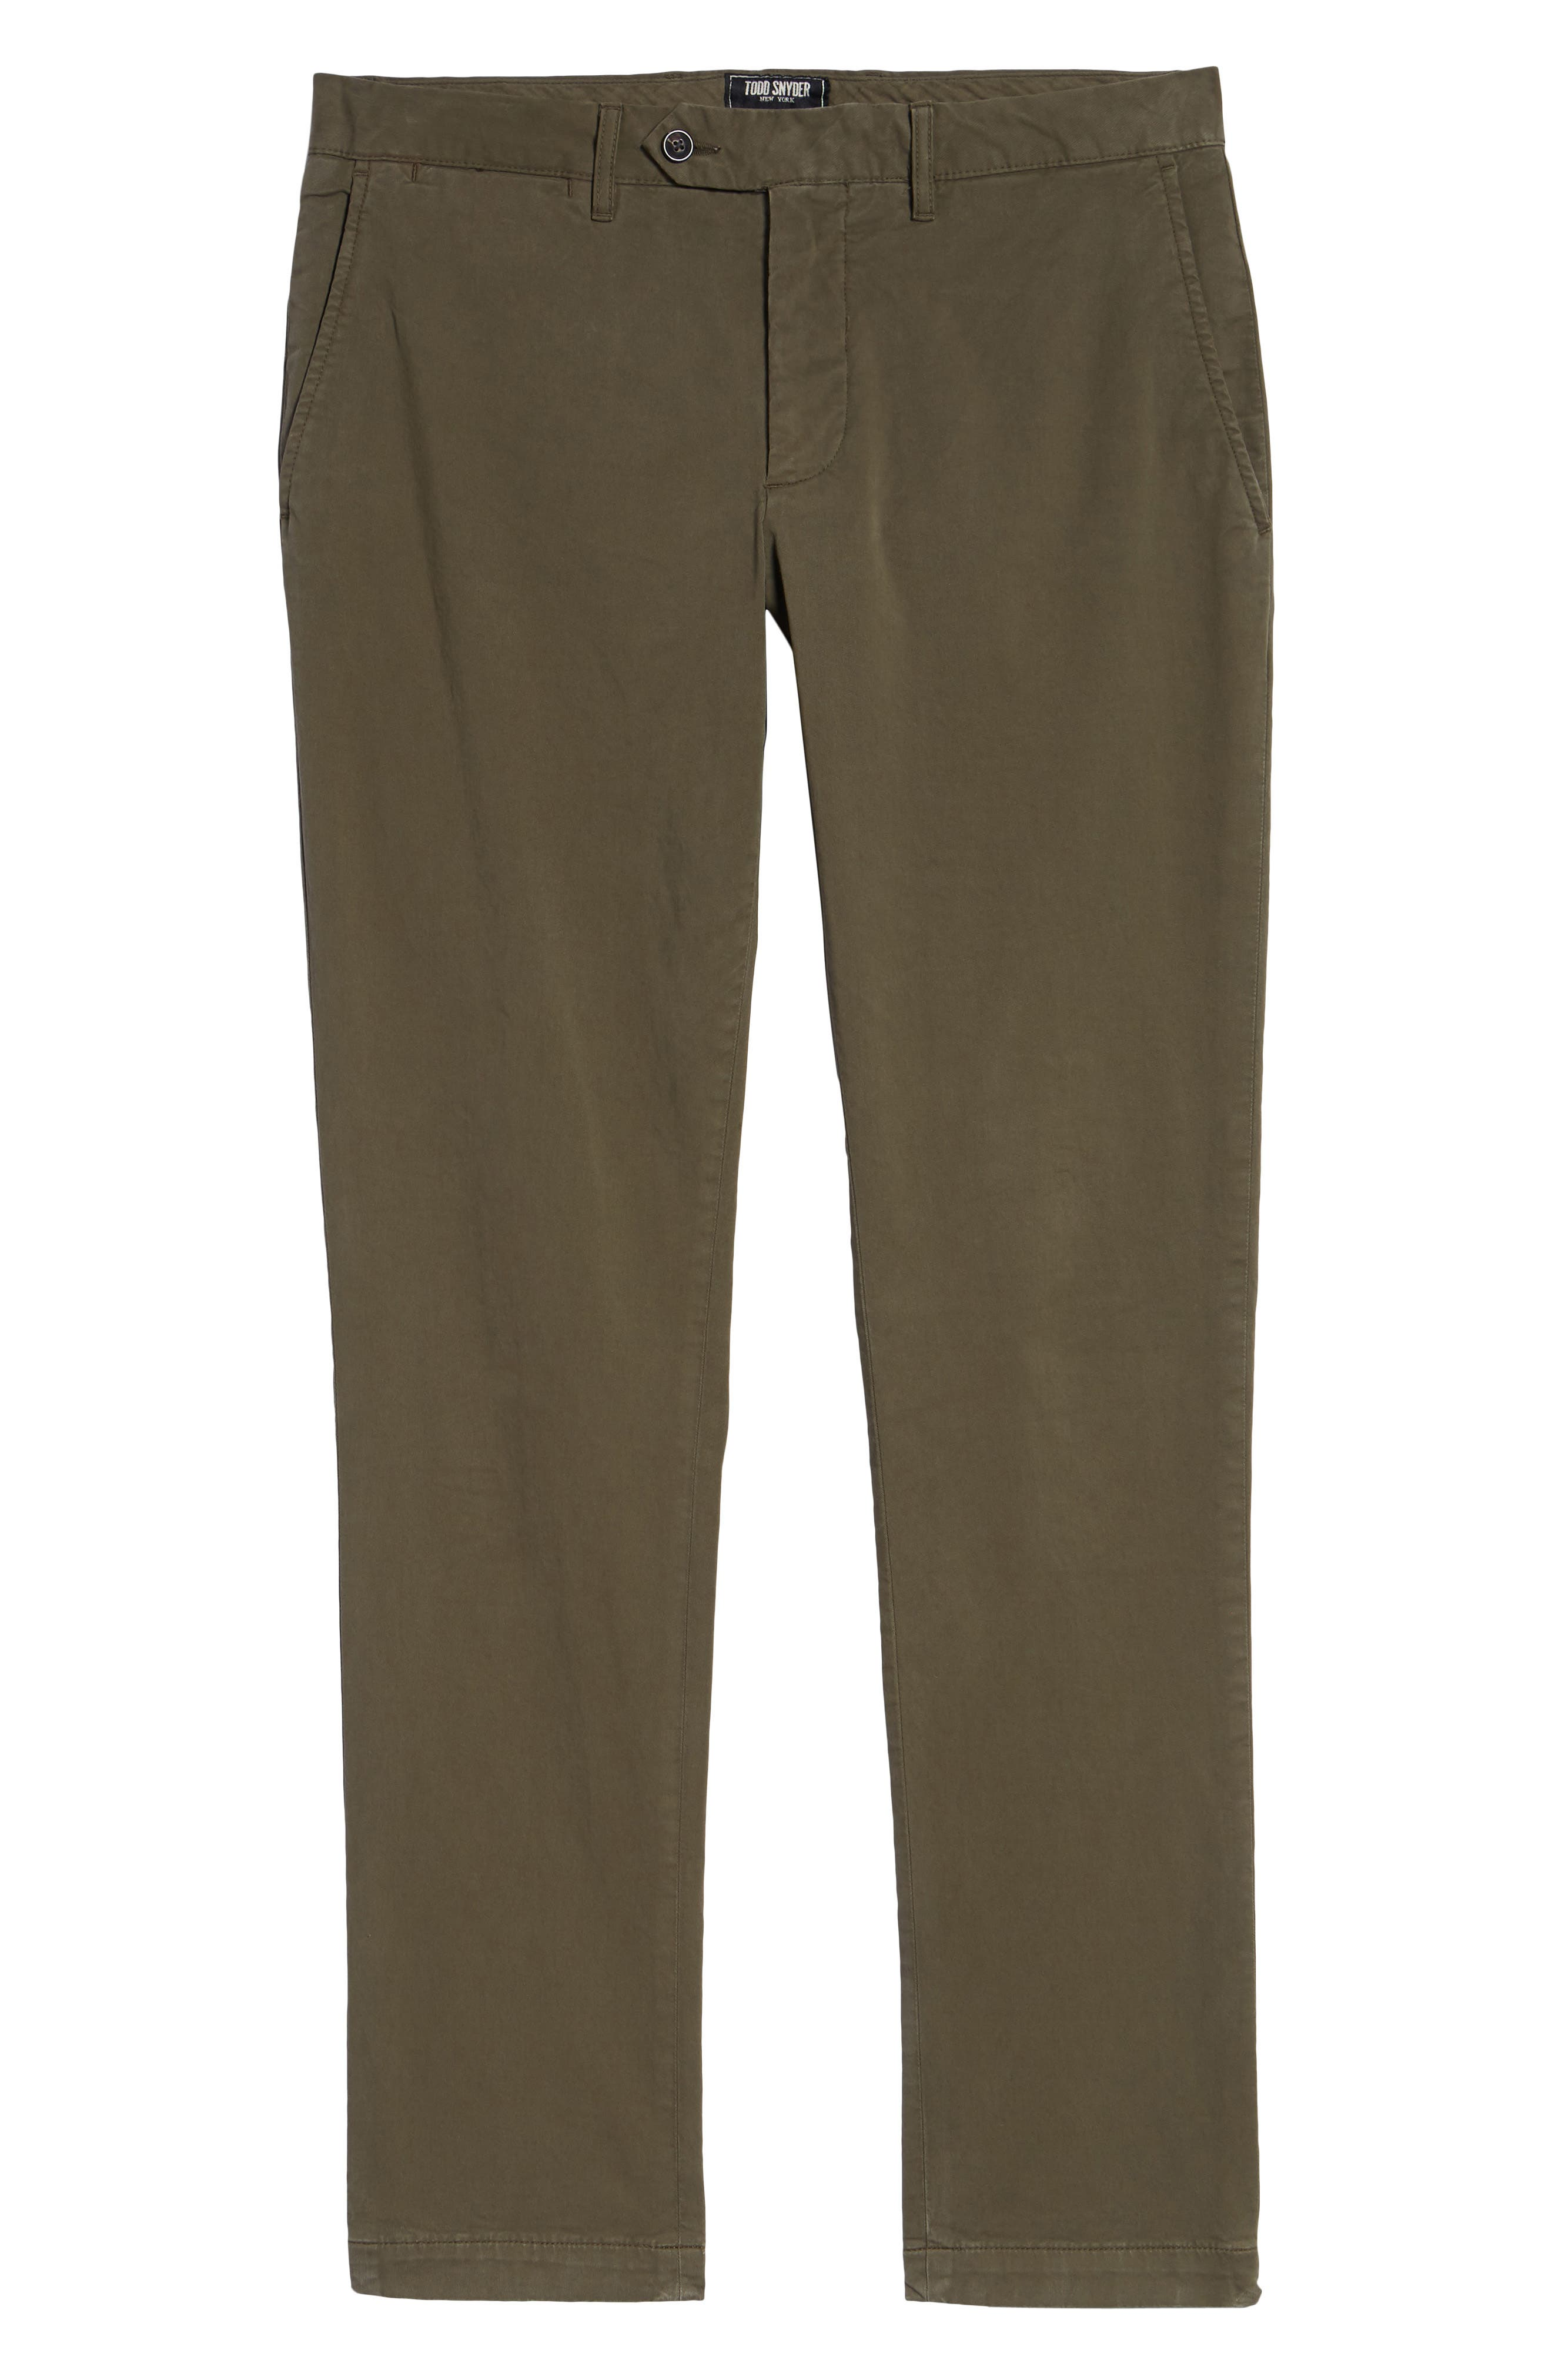 Stretch Twill Chino Pants,                             Alternate thumbnail 6, color,                             340